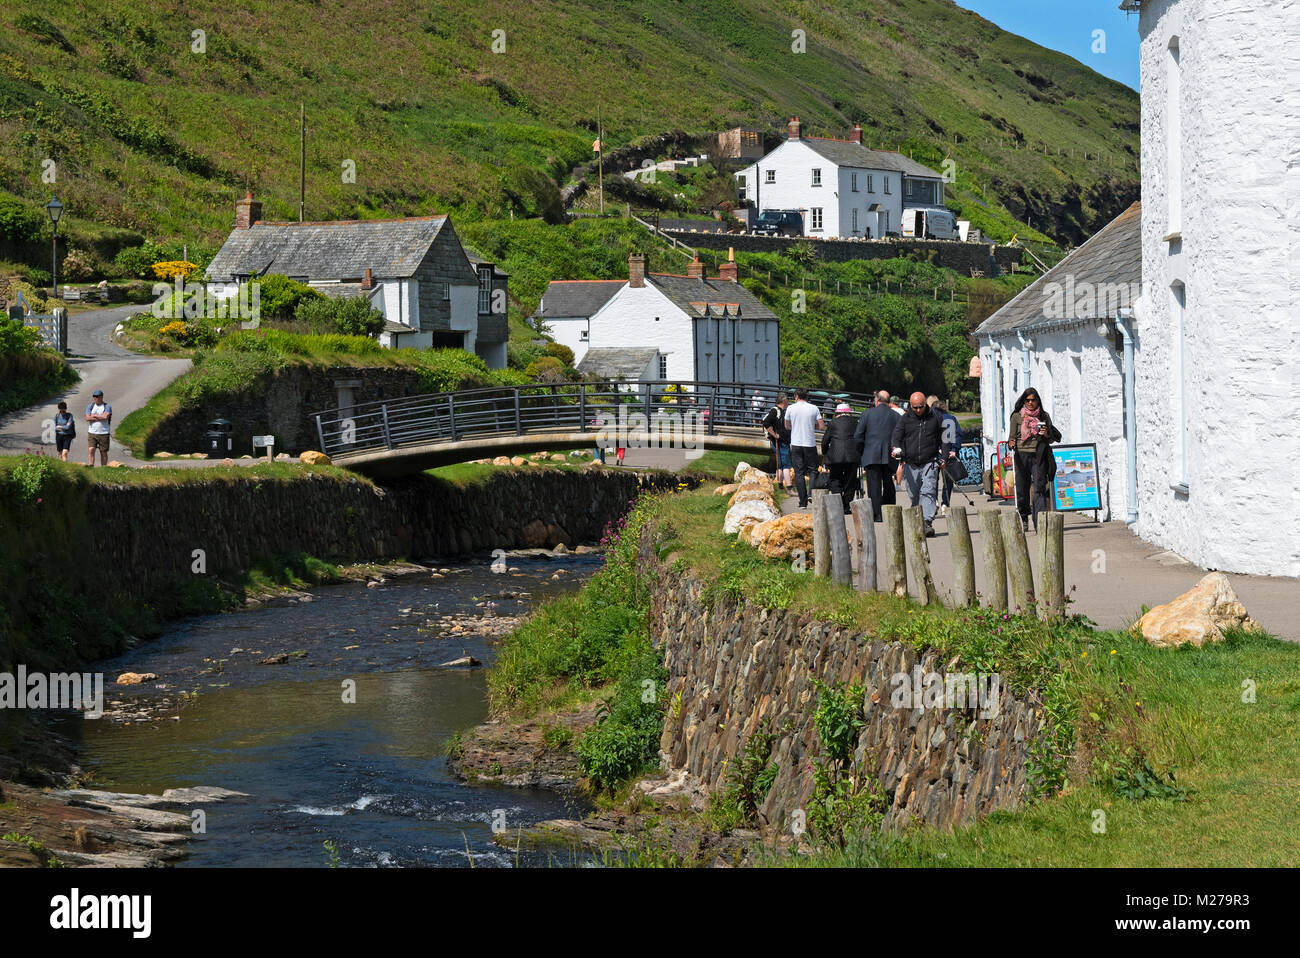 the river valency running through the historic village of boscastle in north cornwall,england, britain, uk,. - Stock Image